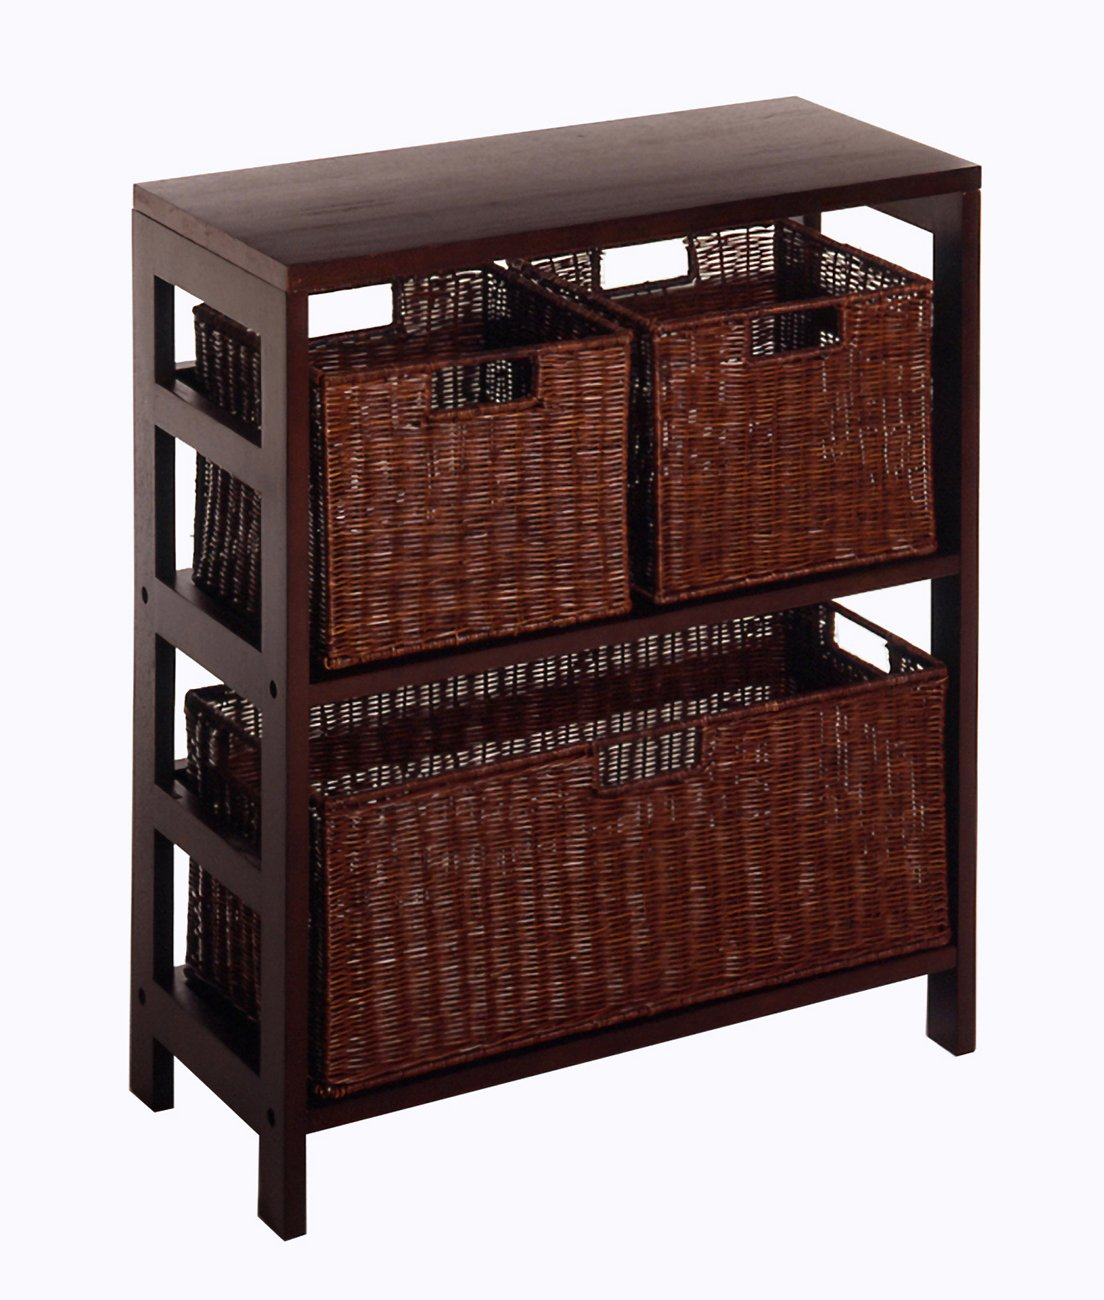 Winsome Wood Leo Wood 3 Tier Shelf with 3 Rattan Baskets - 1 large; 2 small in Espresso Finish